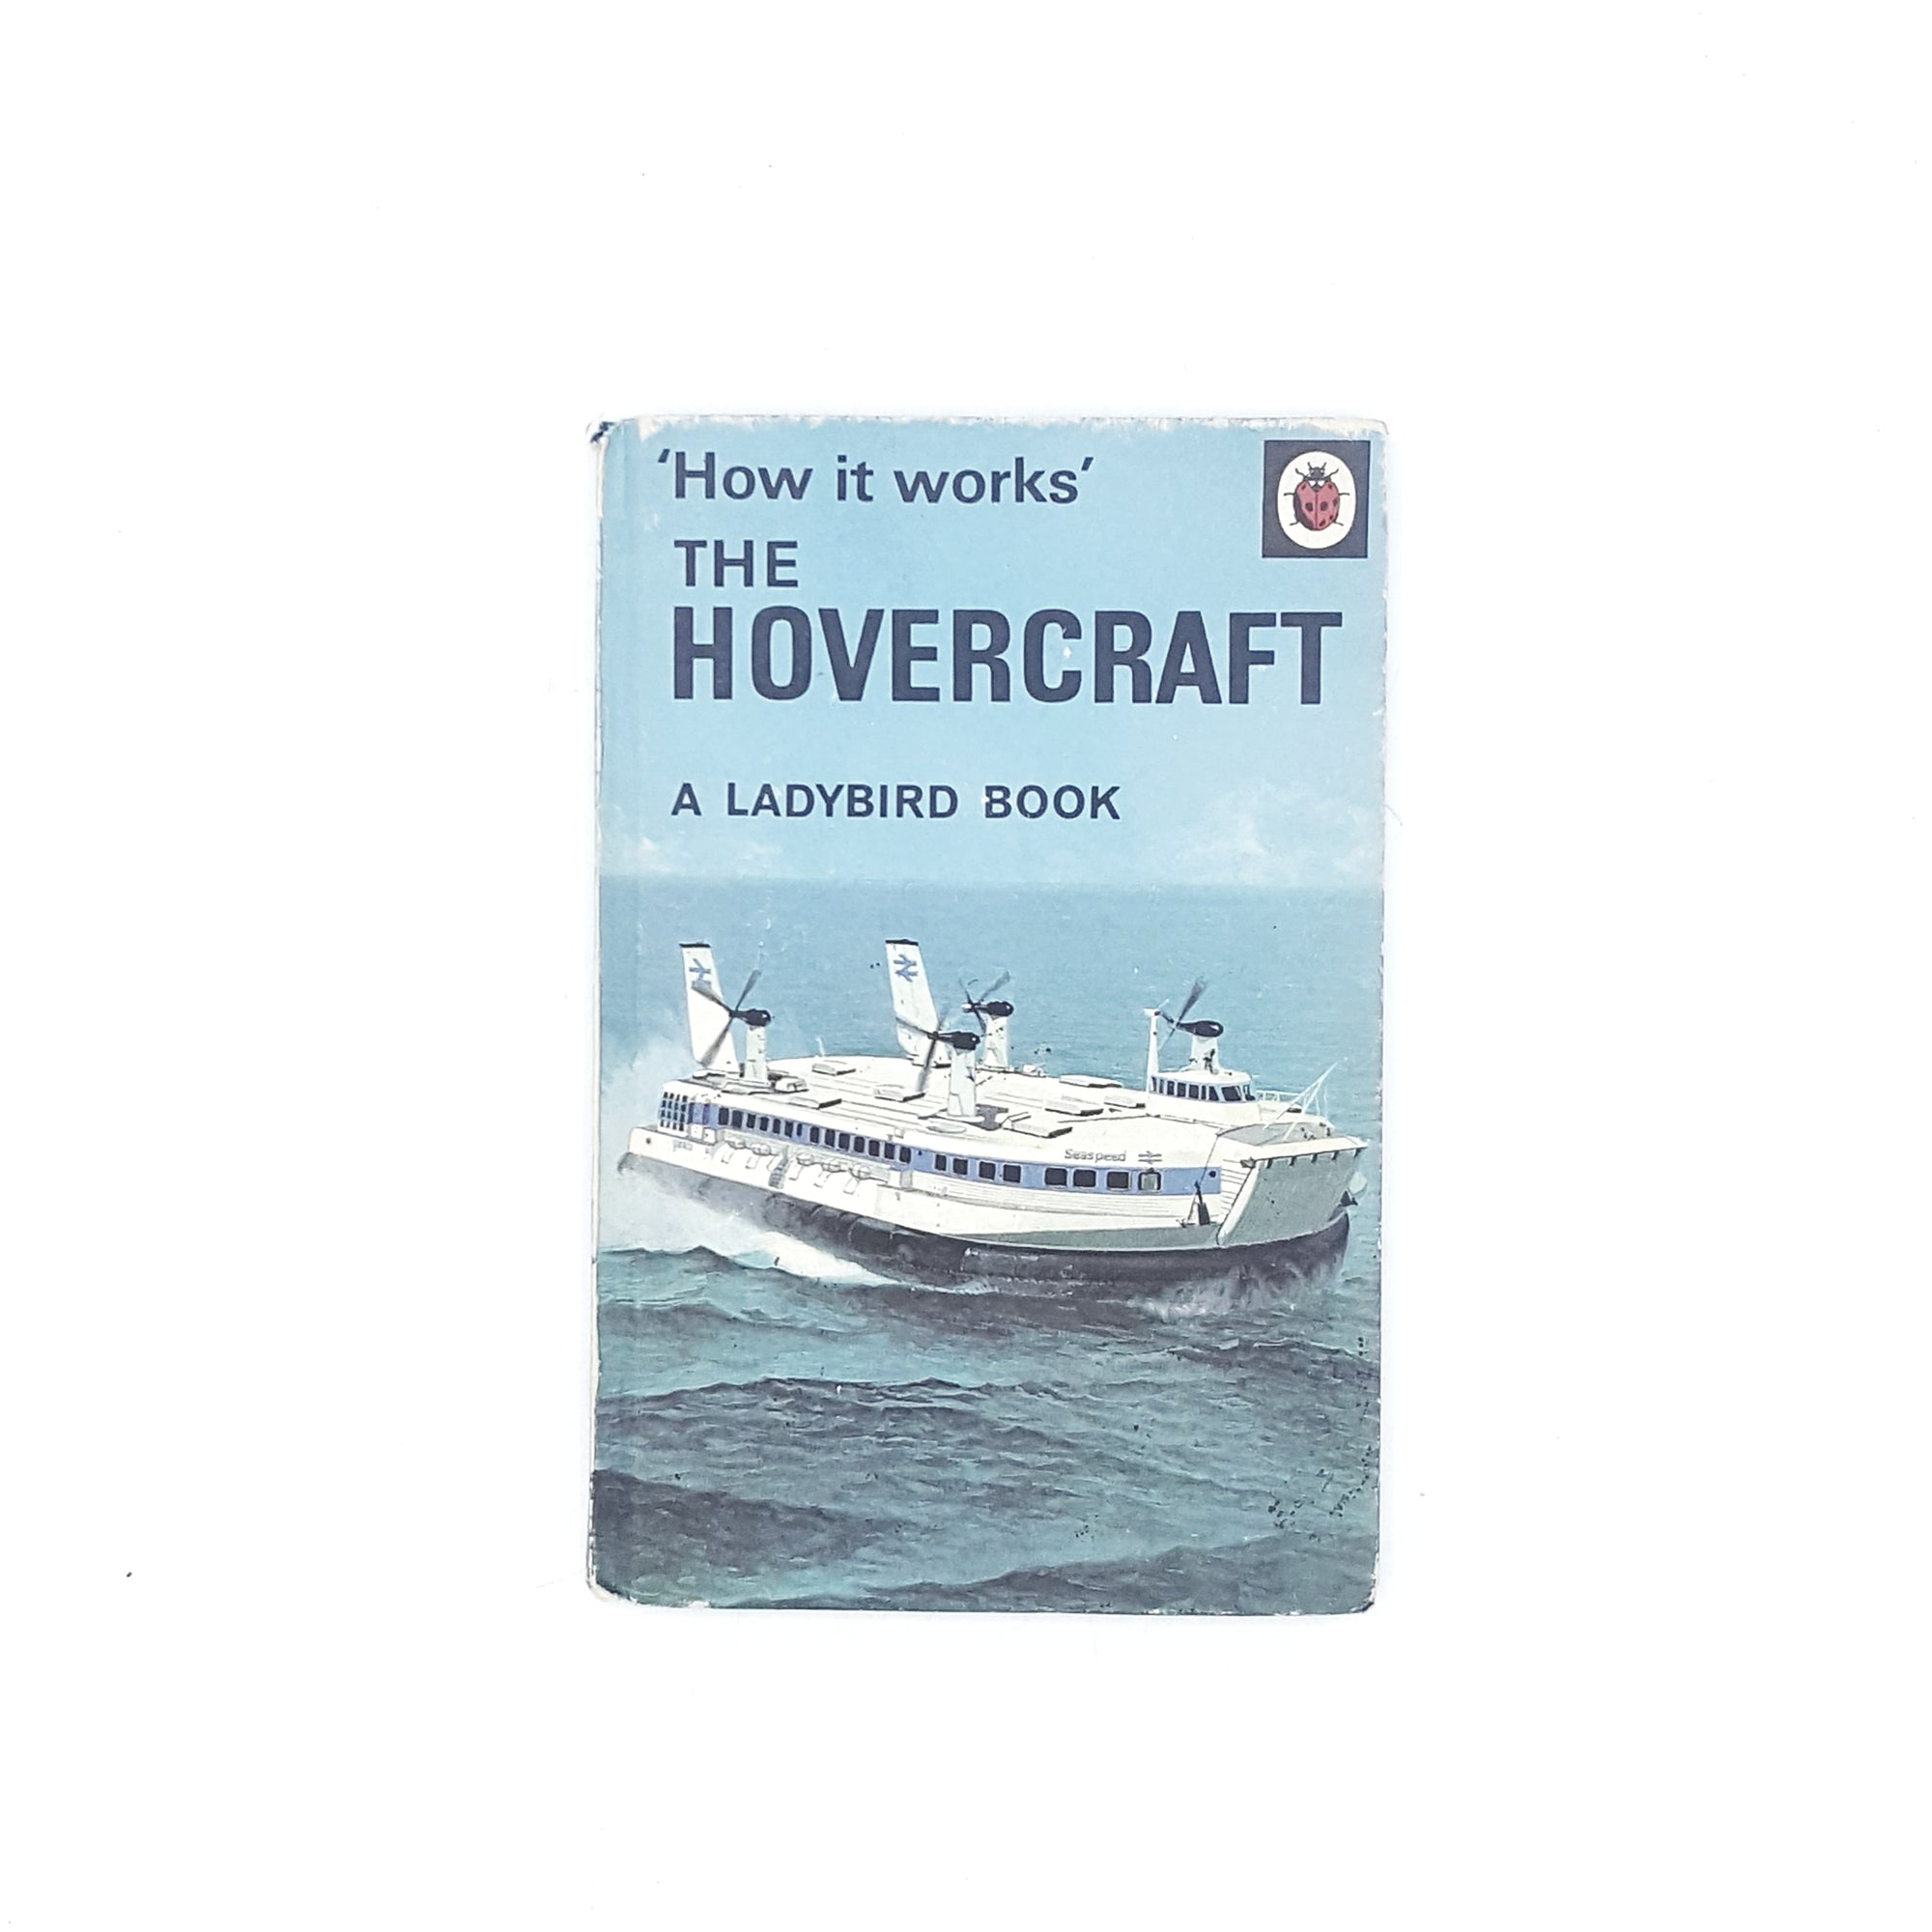 Ladybird: How it works The Hovercraft 1969